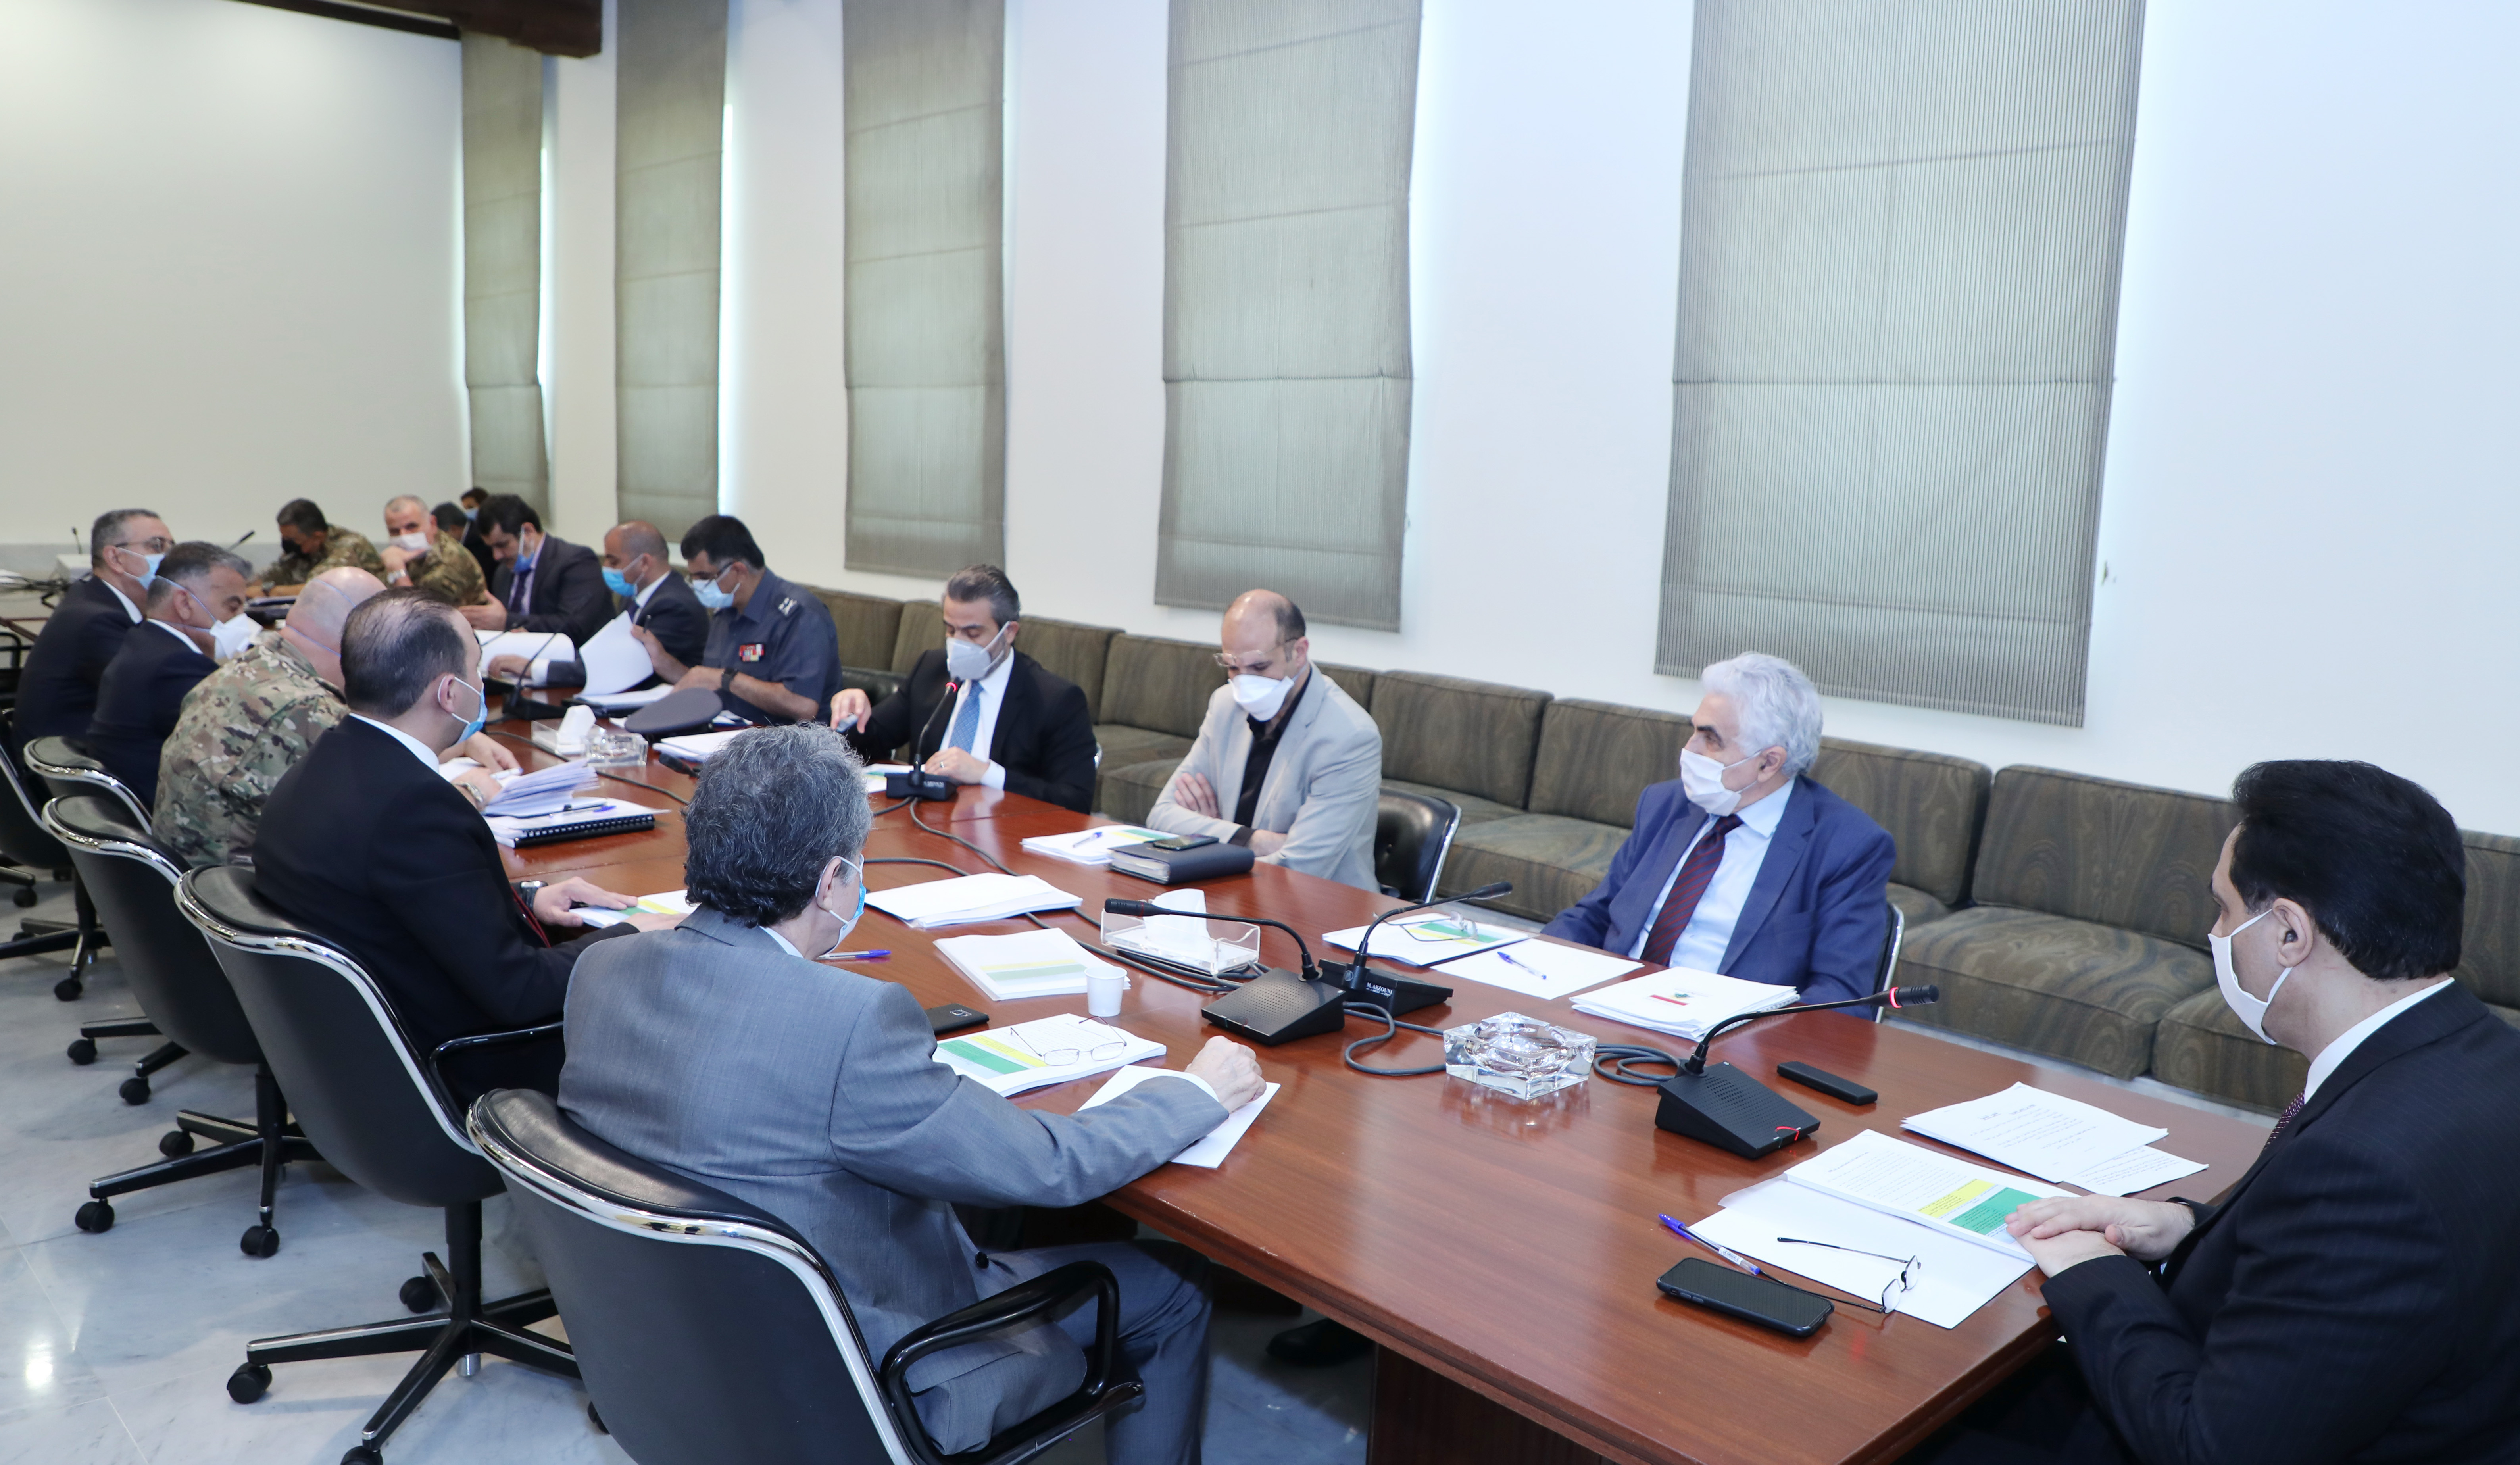 Pr Minister Hassan Diab Heading a Security Meeting 2